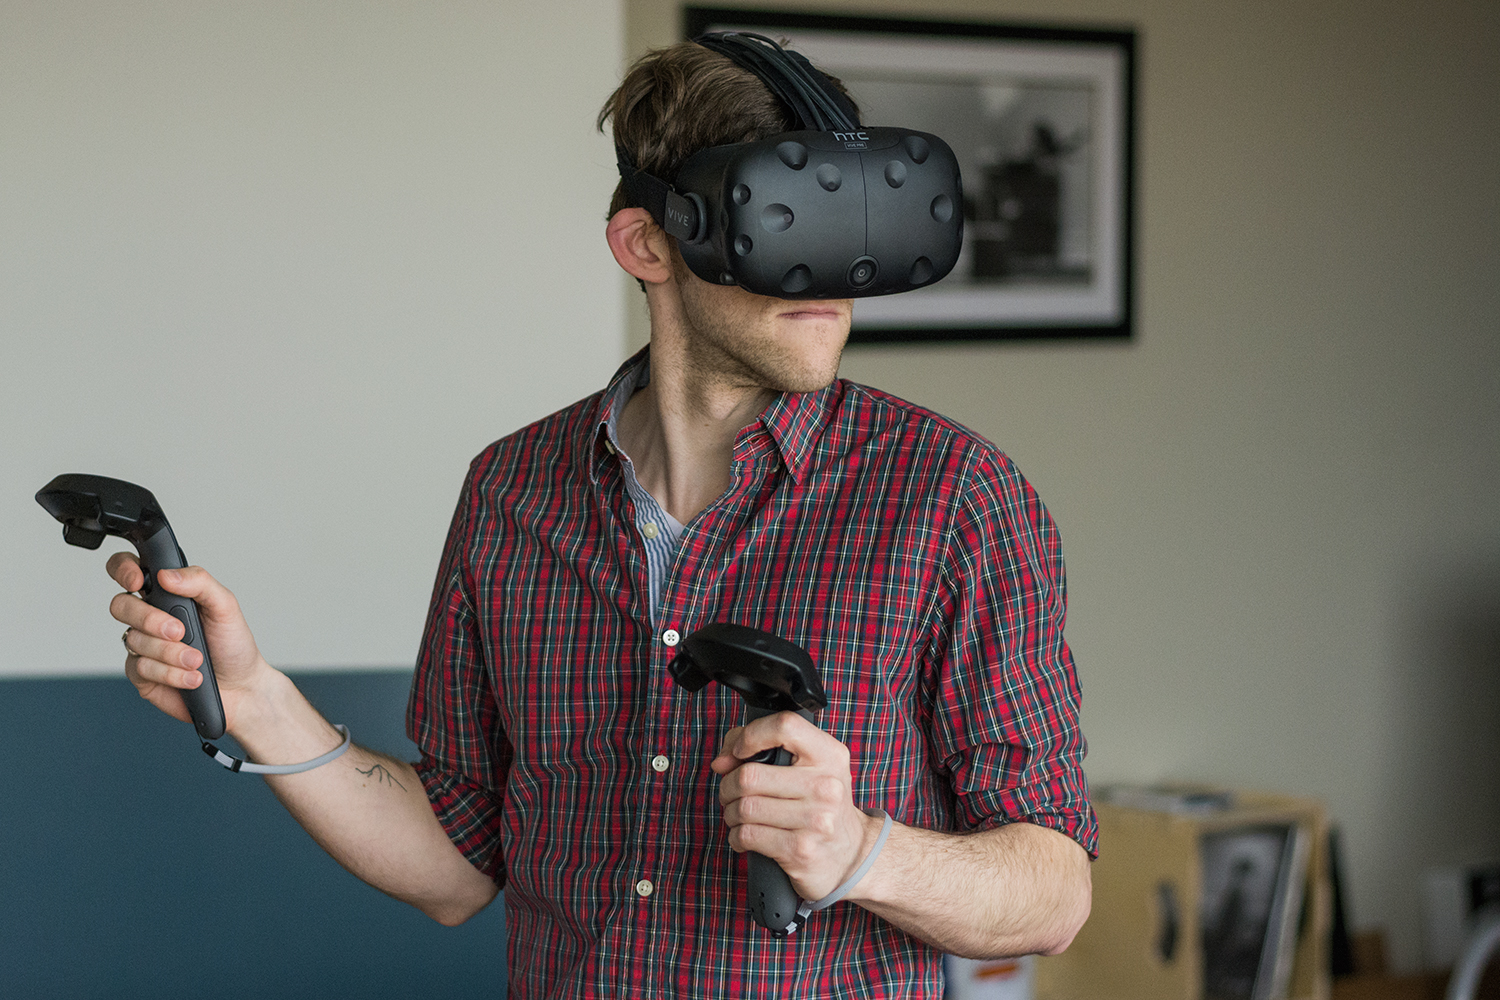 steam vr how to start game